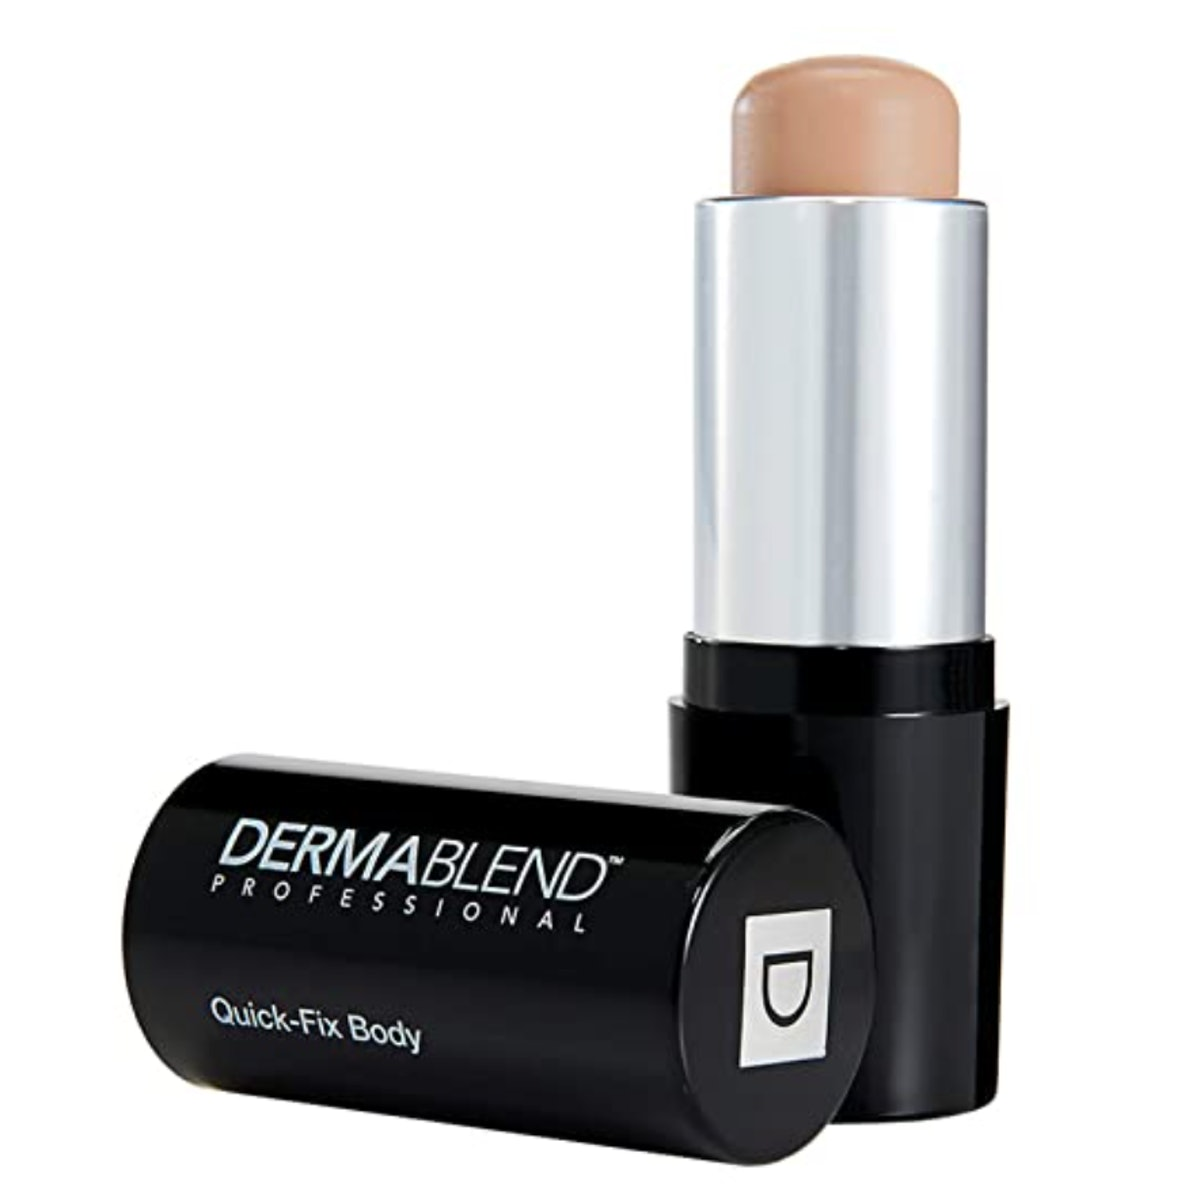 Dermablend Quick-Fix Body Makeup Full Coverage Foundation Stick